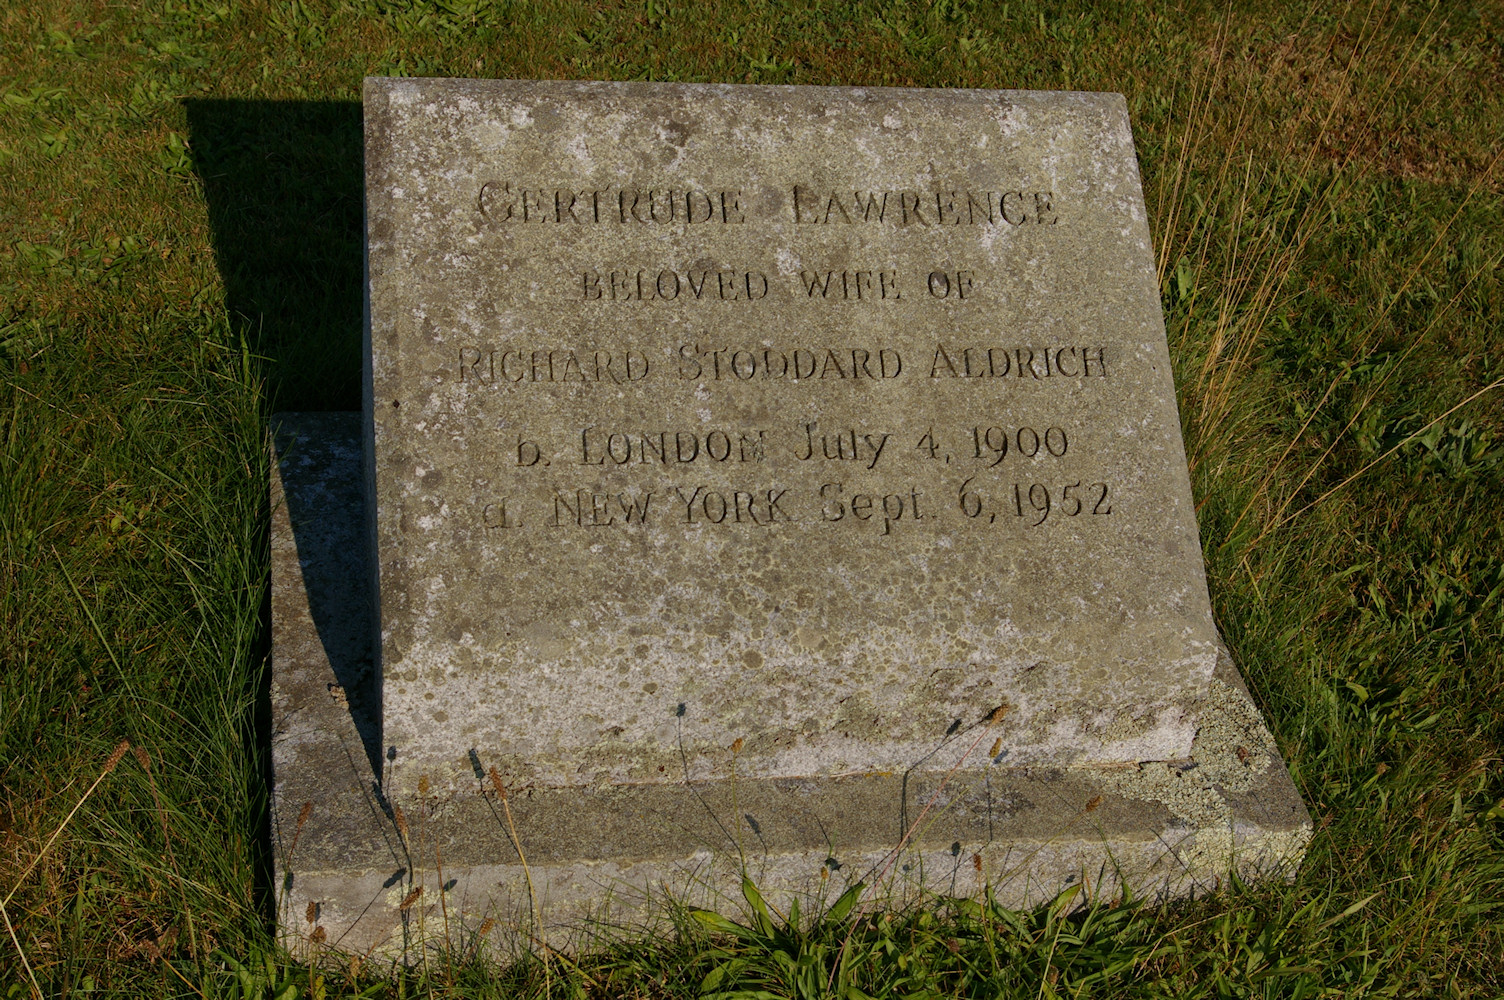 IMGP6743.jpg - Gertrude Lawrence Memorial